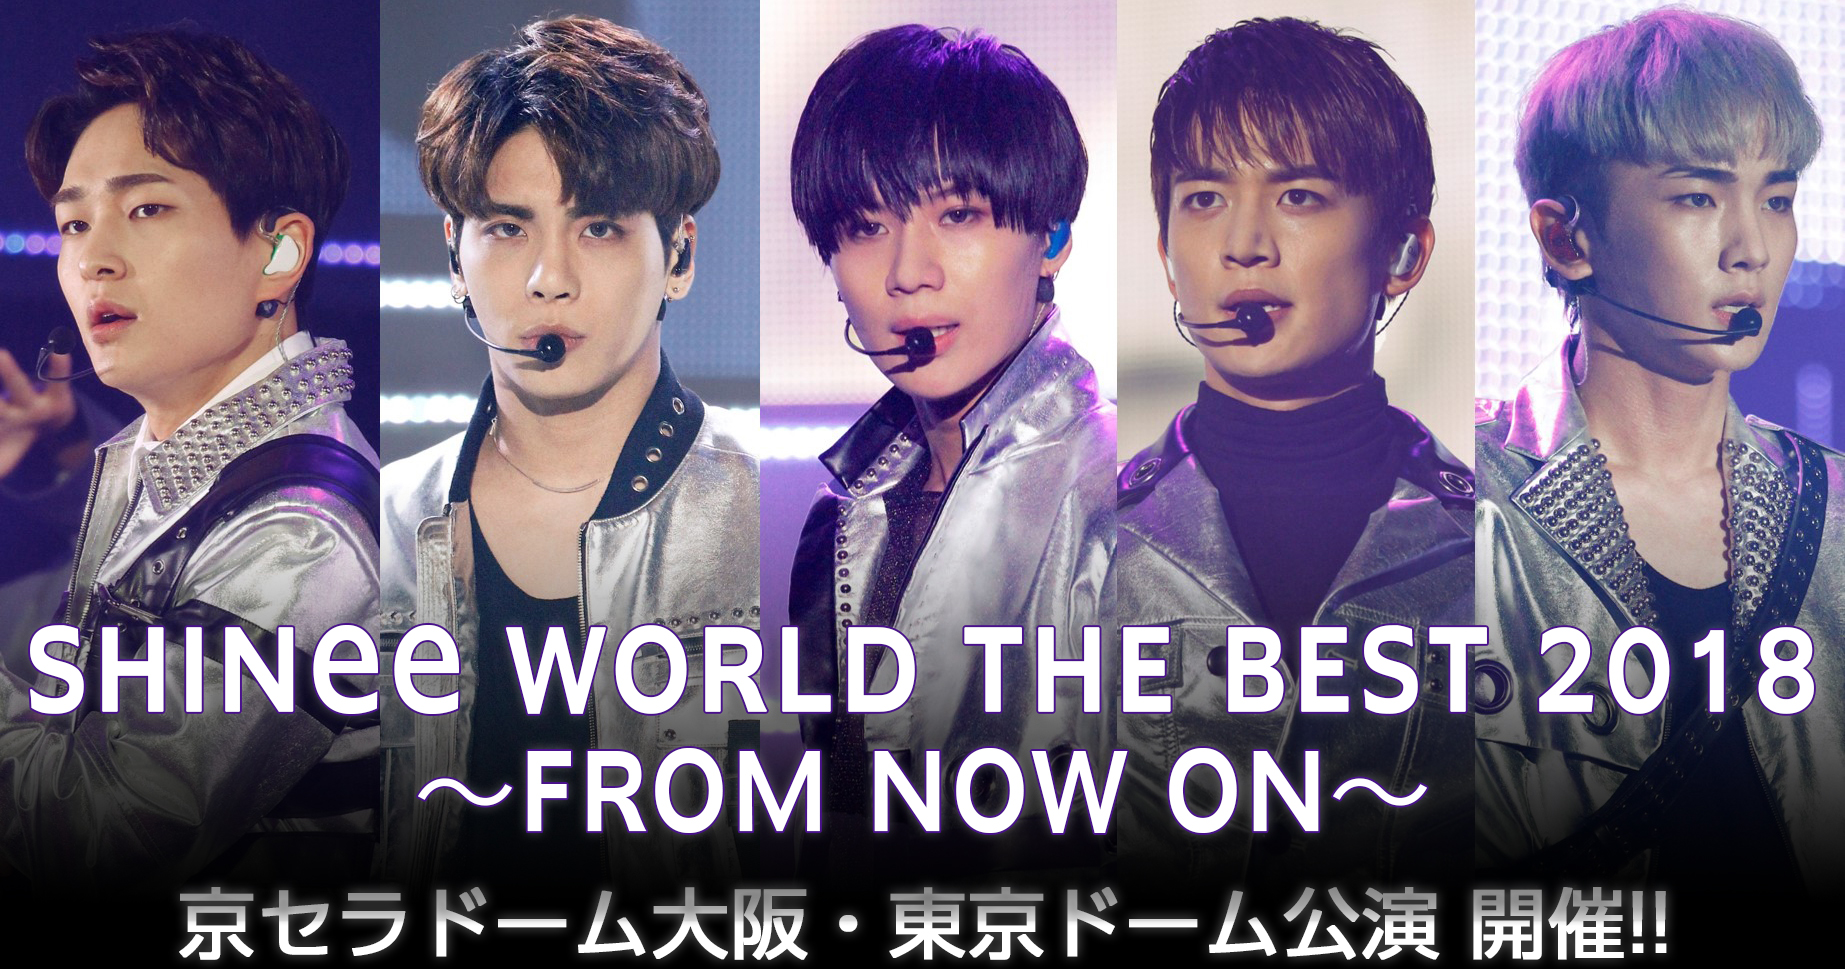 Concert] SHINee World 2018 THE BEST ~FROM NOW ON~ [2/17~2/27